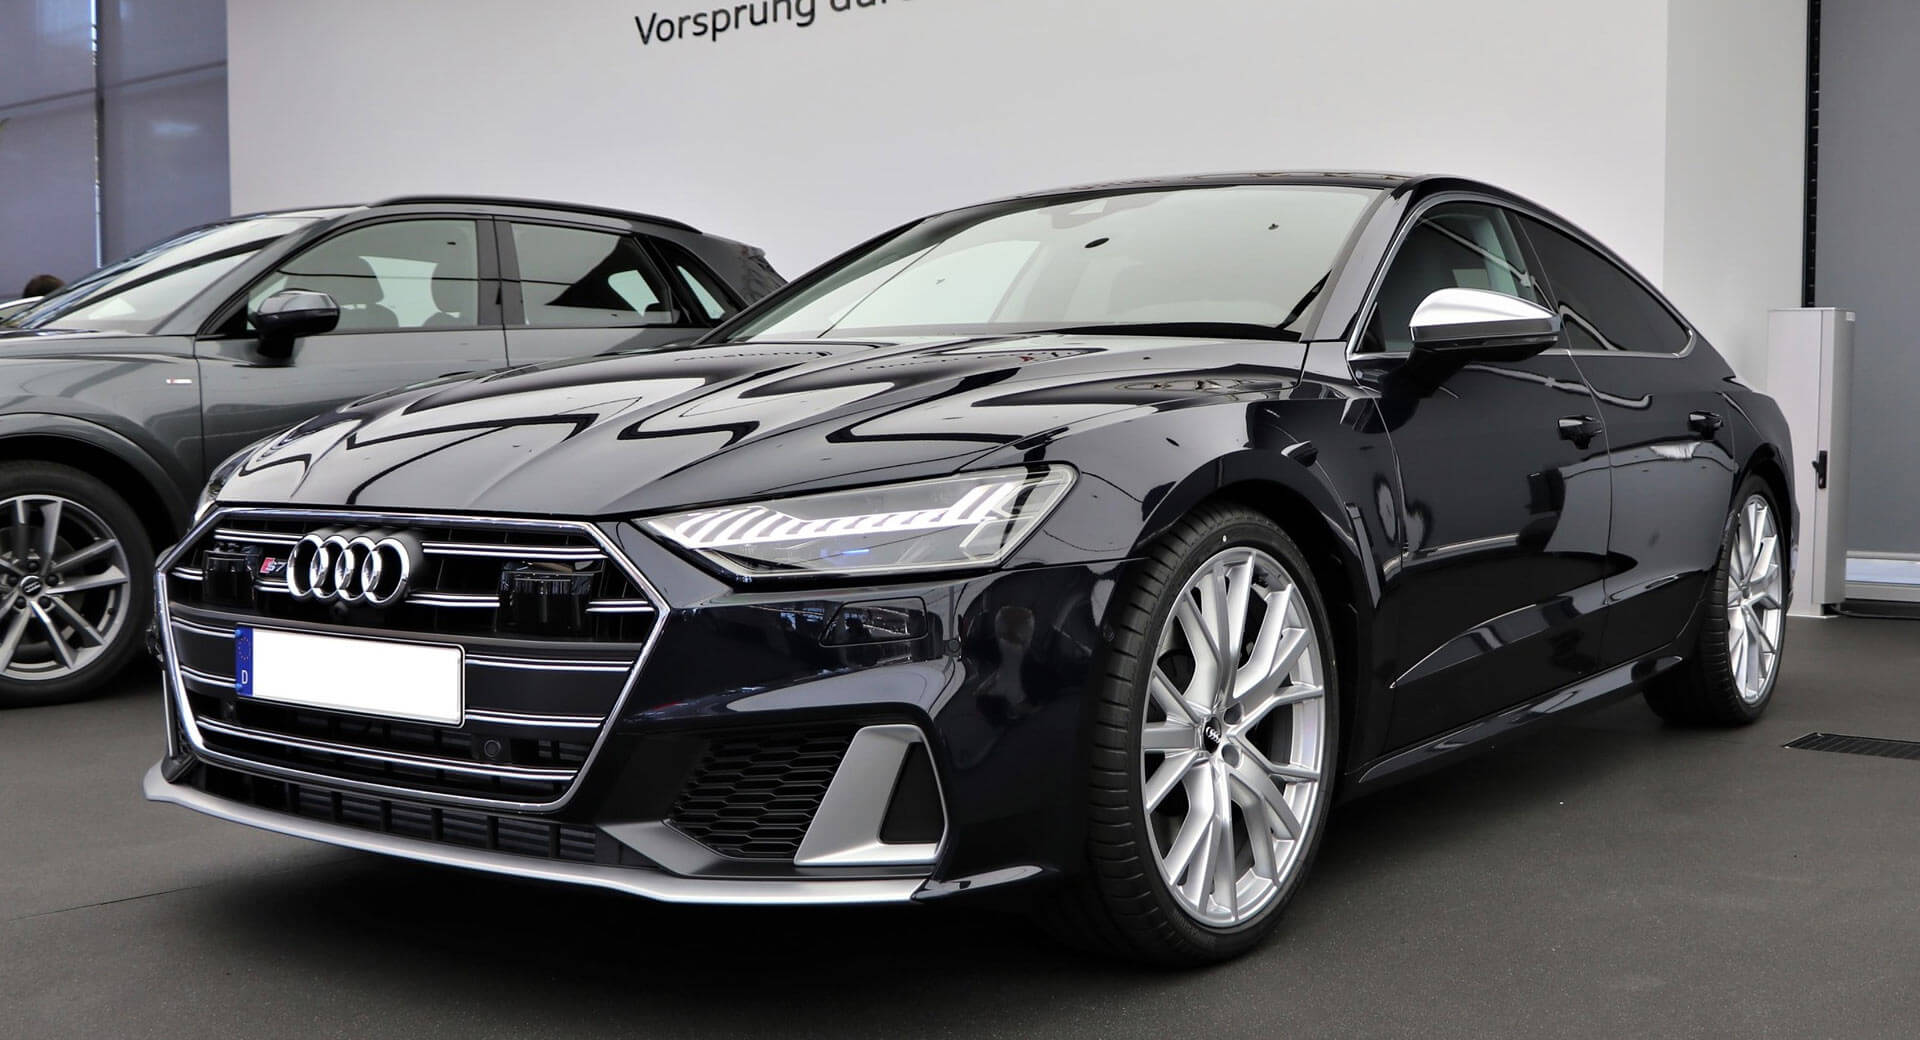 2020 Audi S7 On Display With Firmament Blue Metallic ...